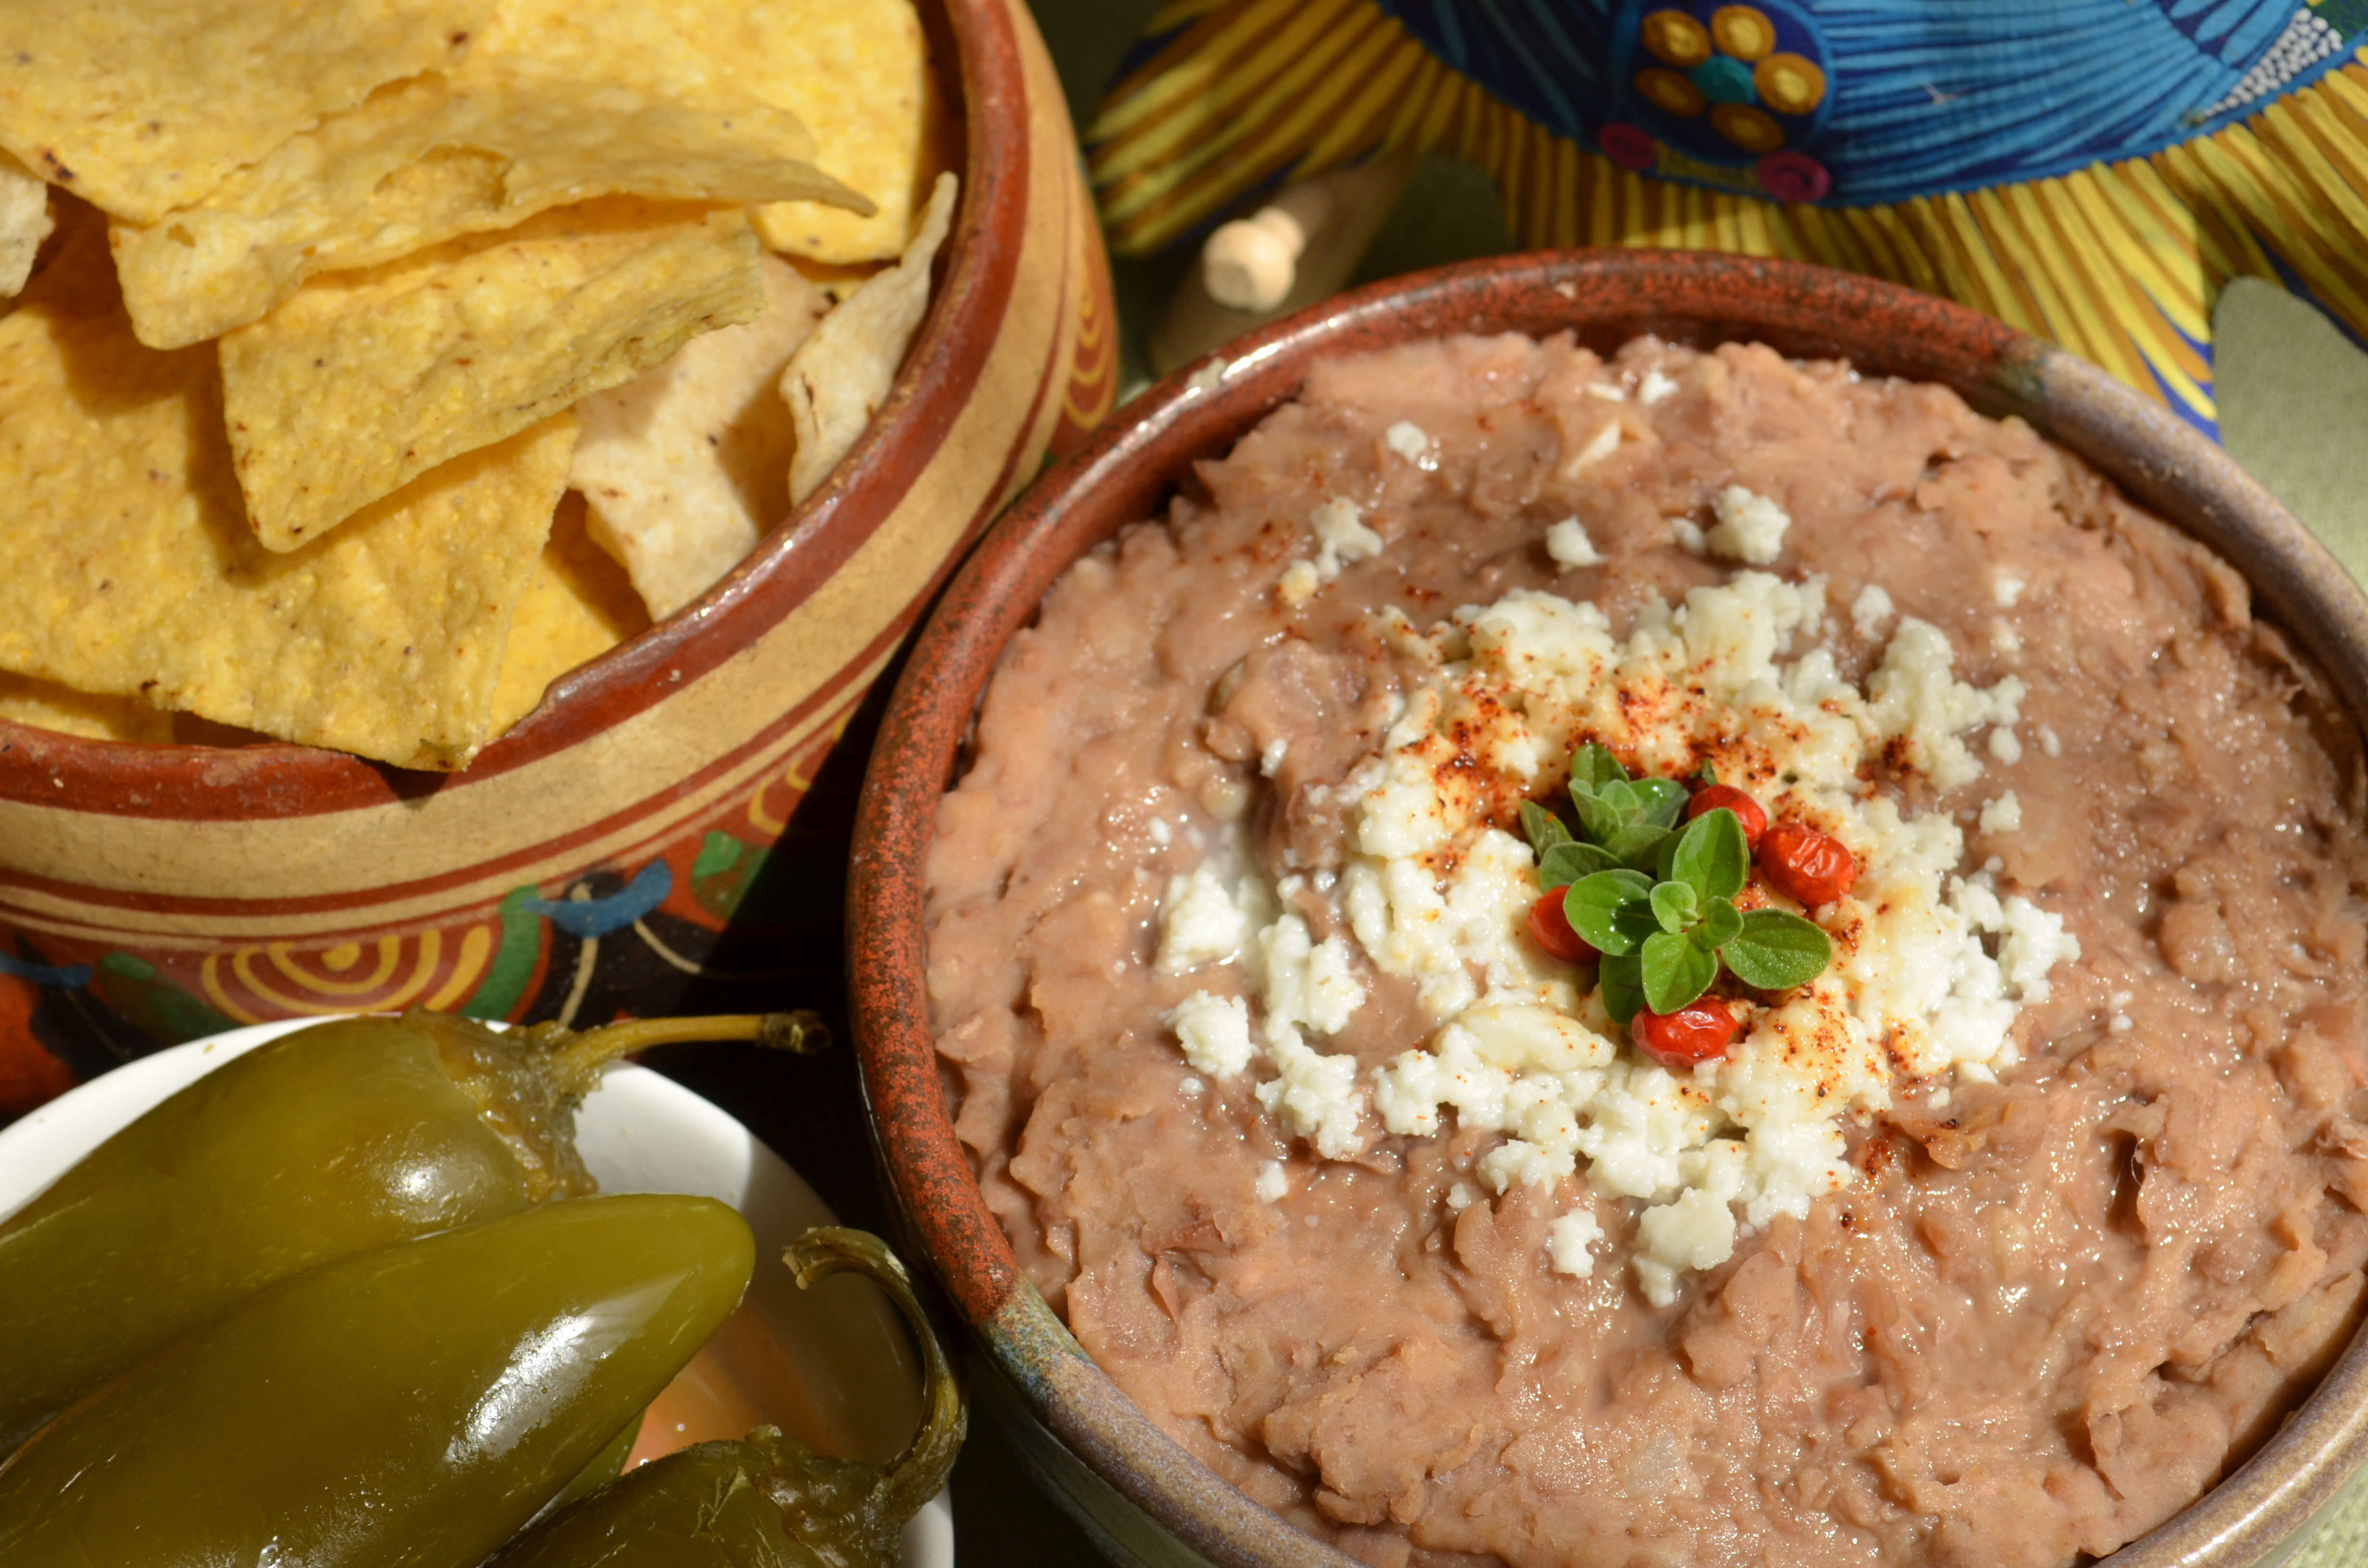 universally loved simple comfort food, refried beans will easily ...